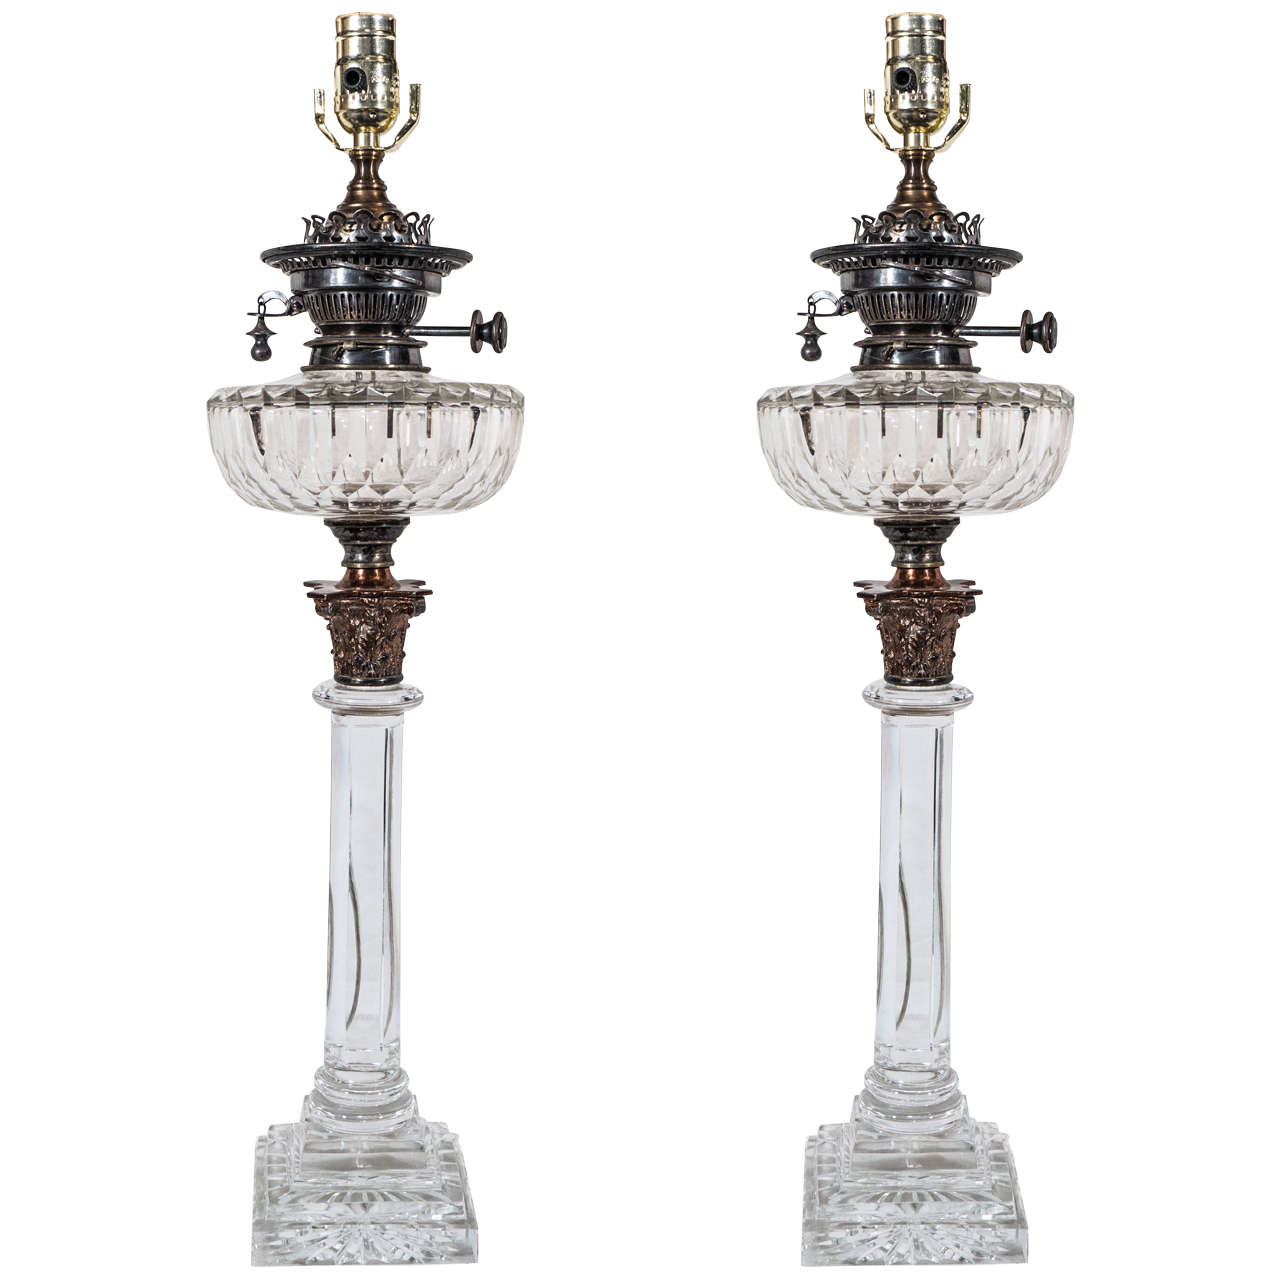 Antique Crystal Table Lamps | Neoclassical Cut Glass Lamps ...